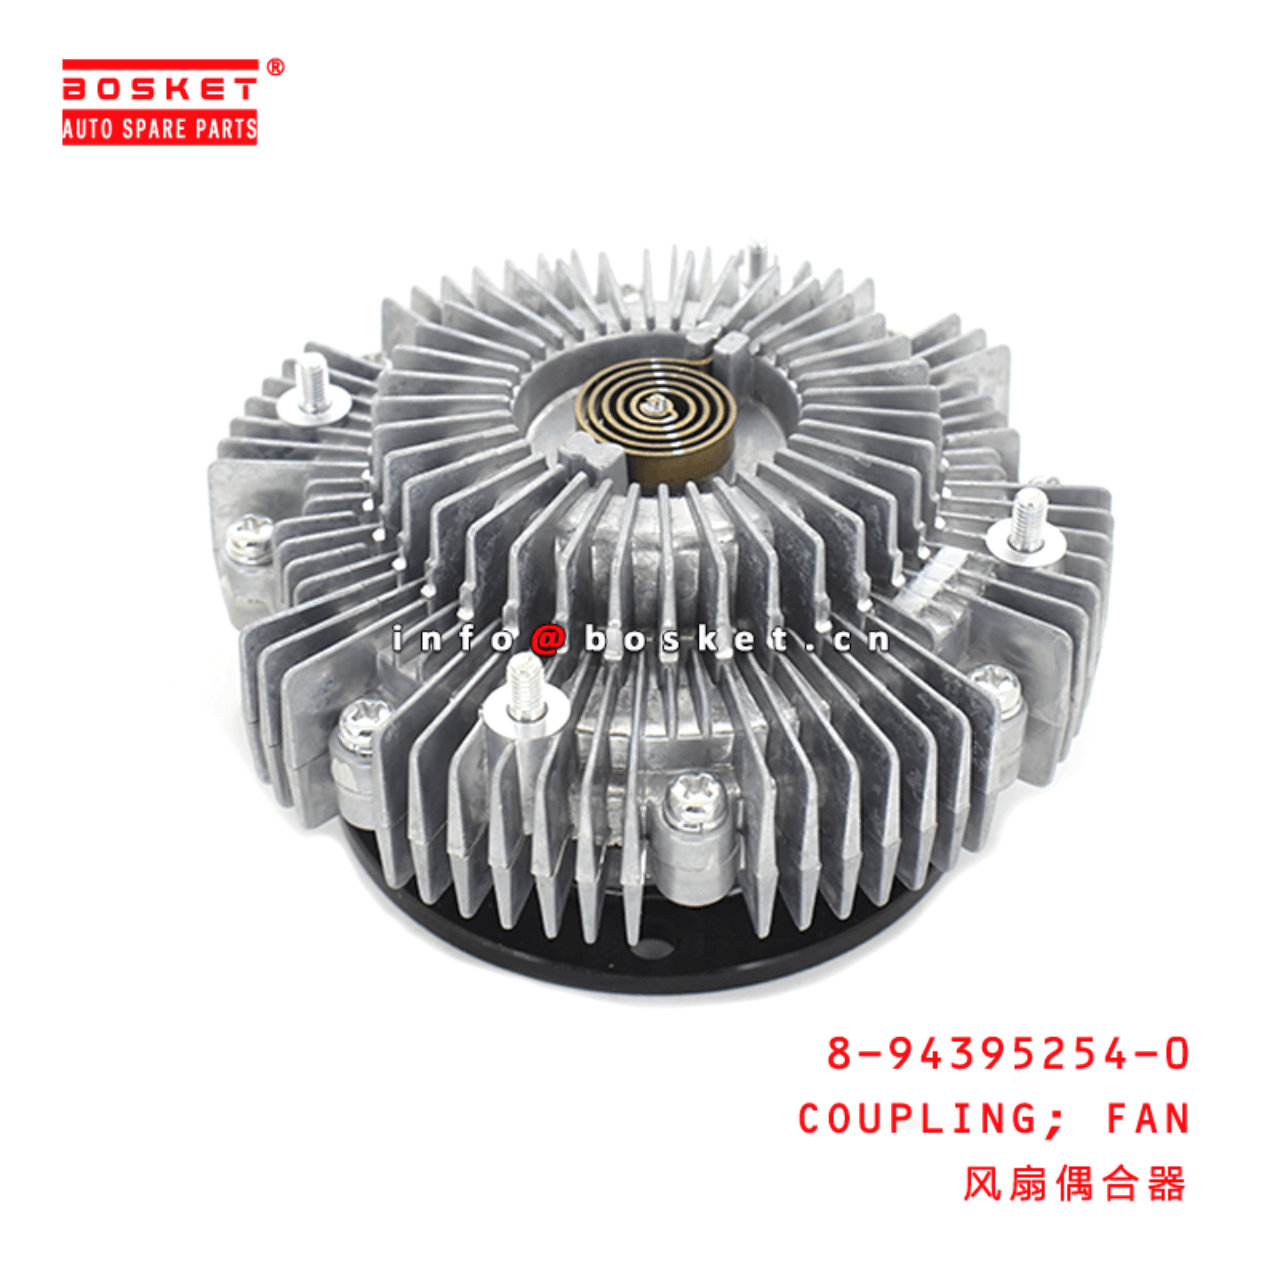 8-94395254-0 Fan Coupling 8943952540 Suitable for ISUZU FRR FSR FTR 6HH1